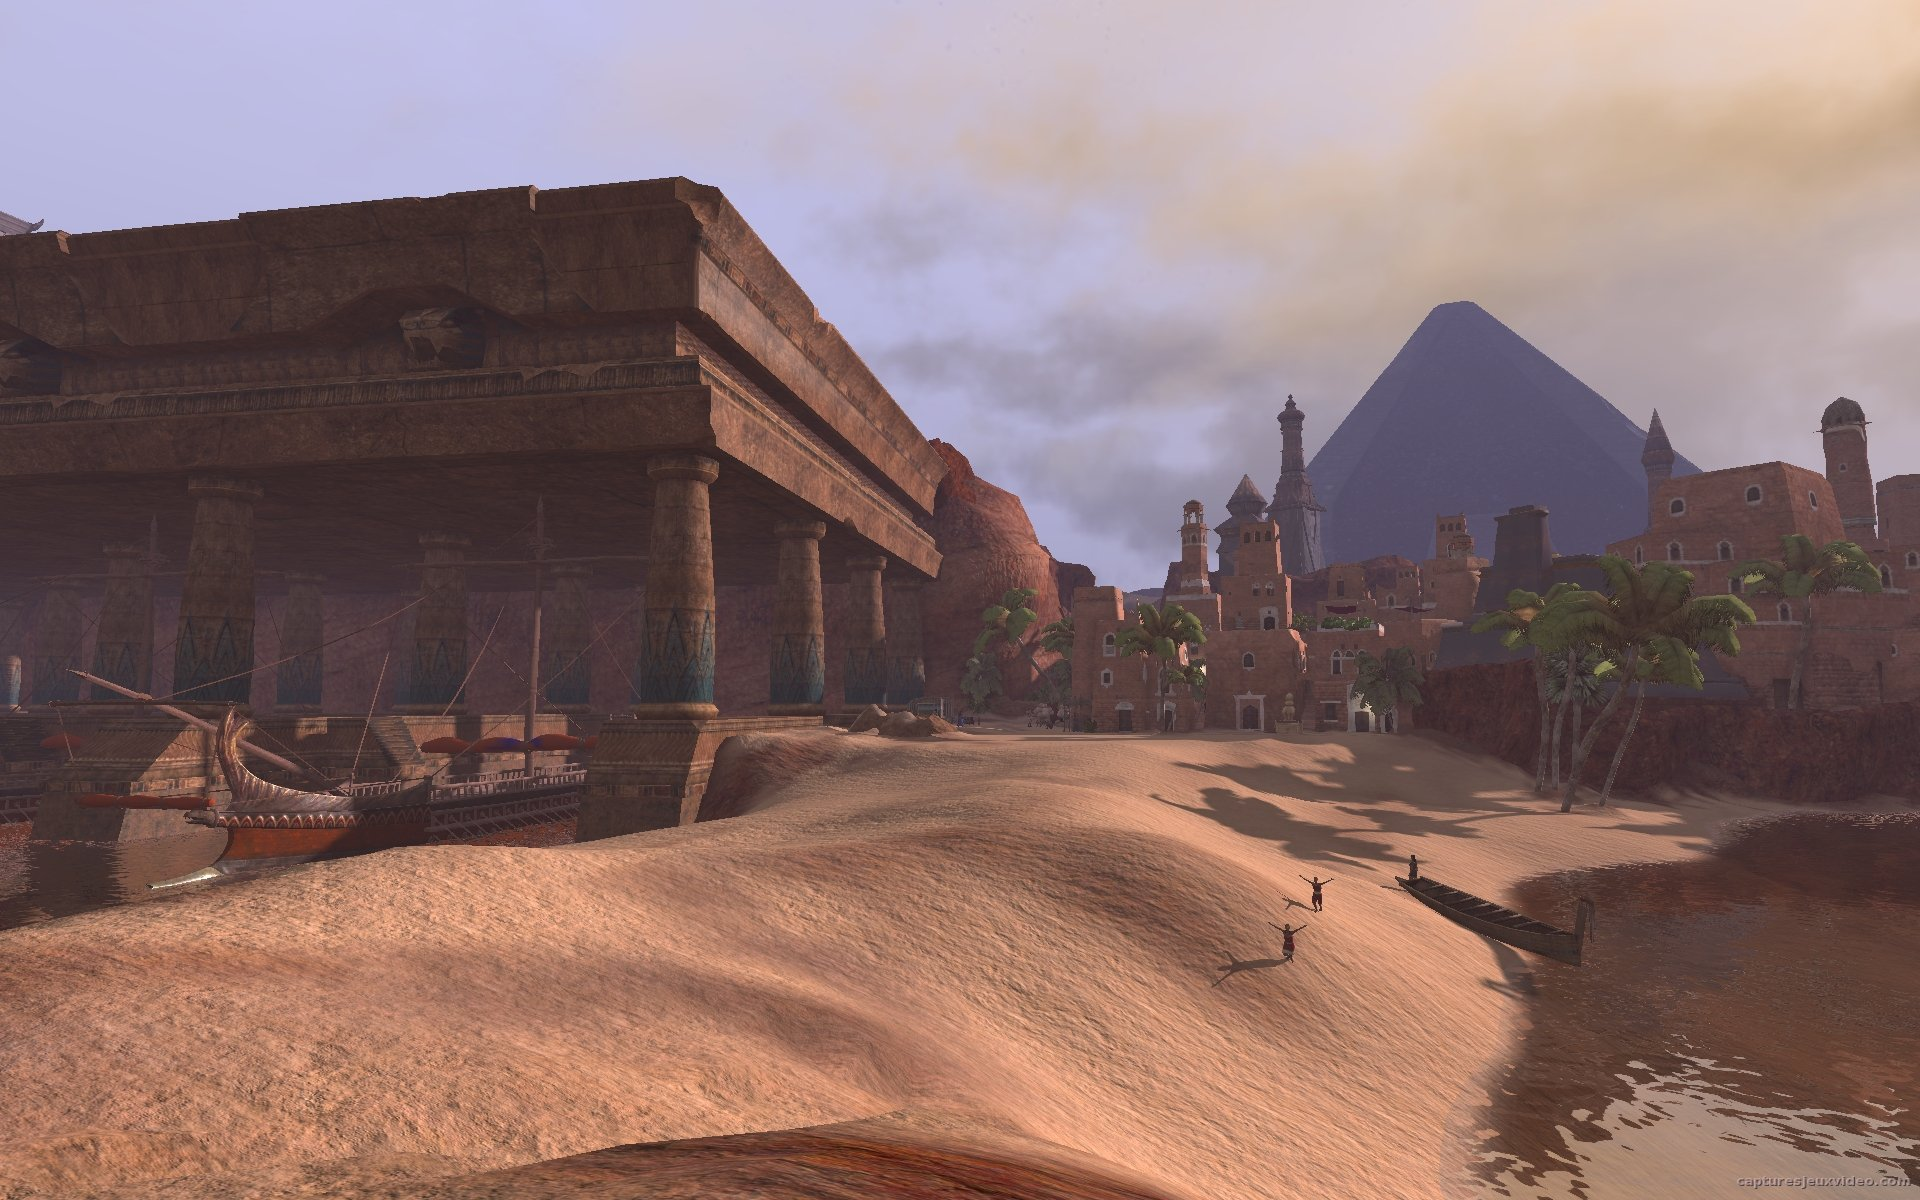 age of conan unchained nouveau khemi screenshot 0008